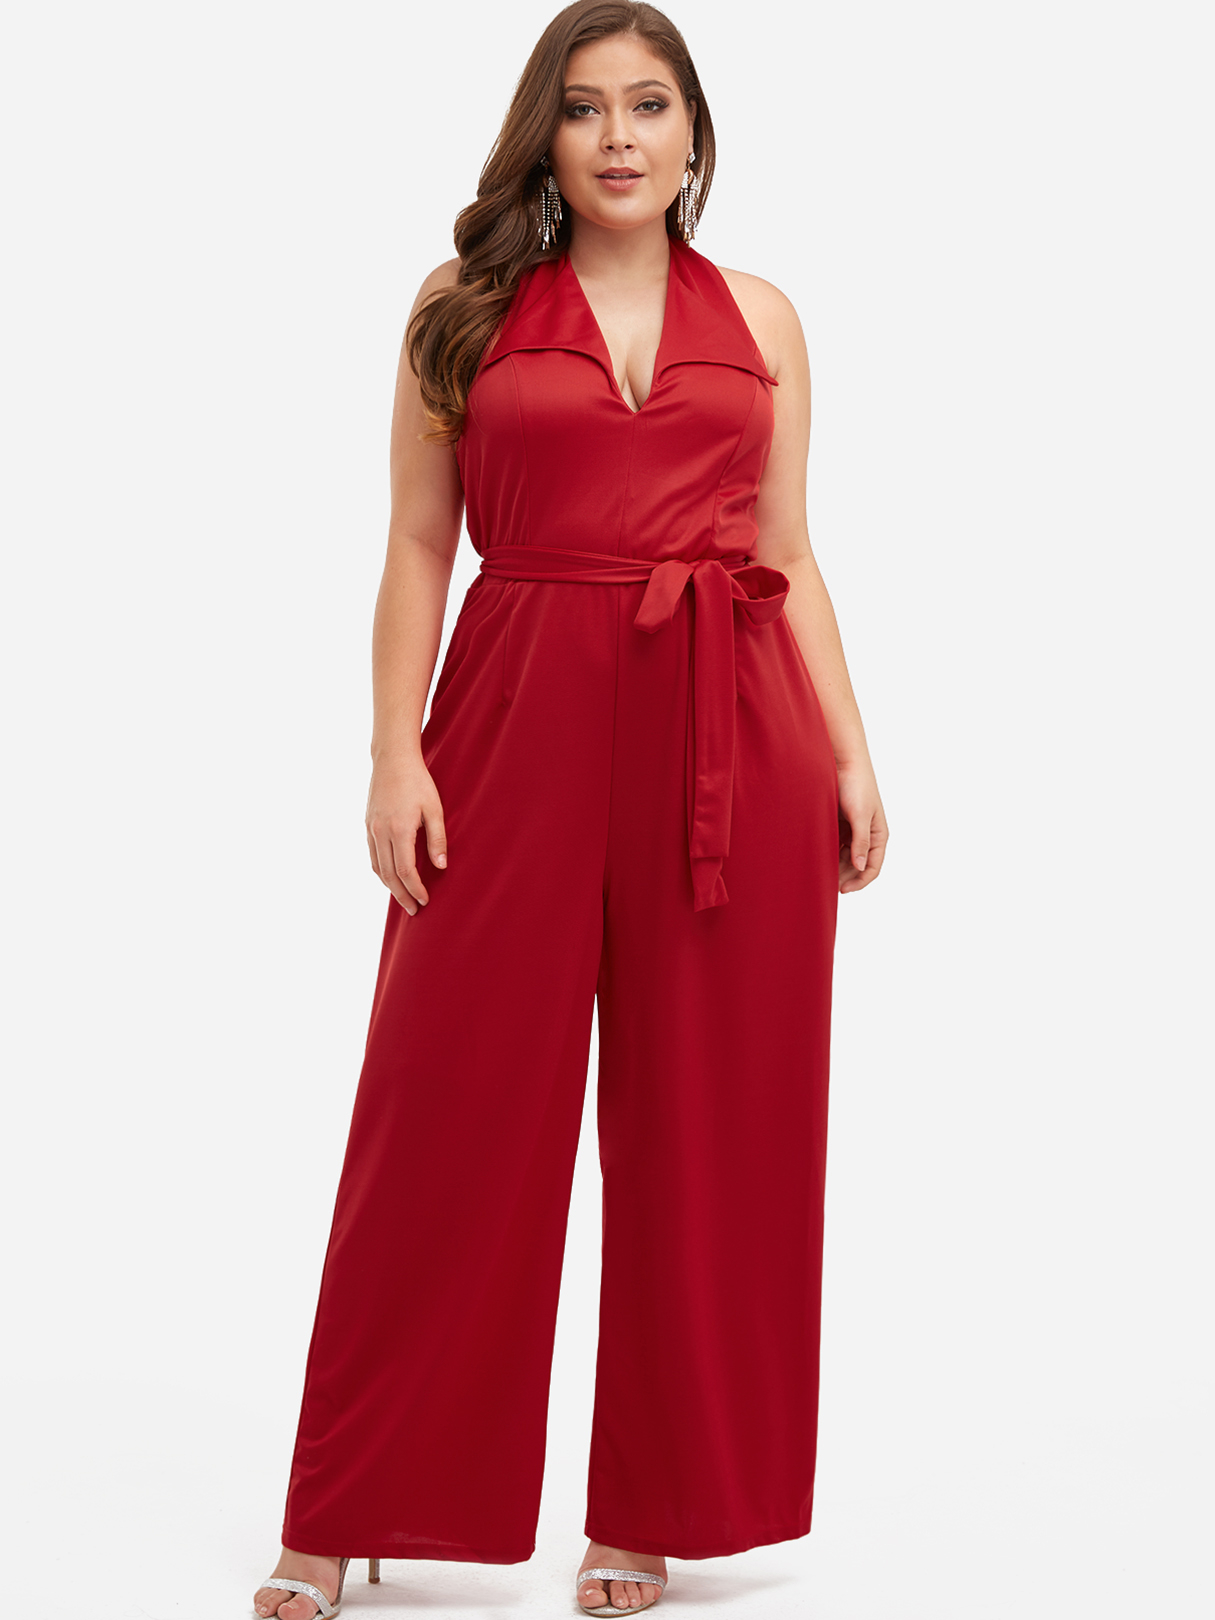 Plus Size Red Backless Self-tie Halter Wide Leg Jumpsuit